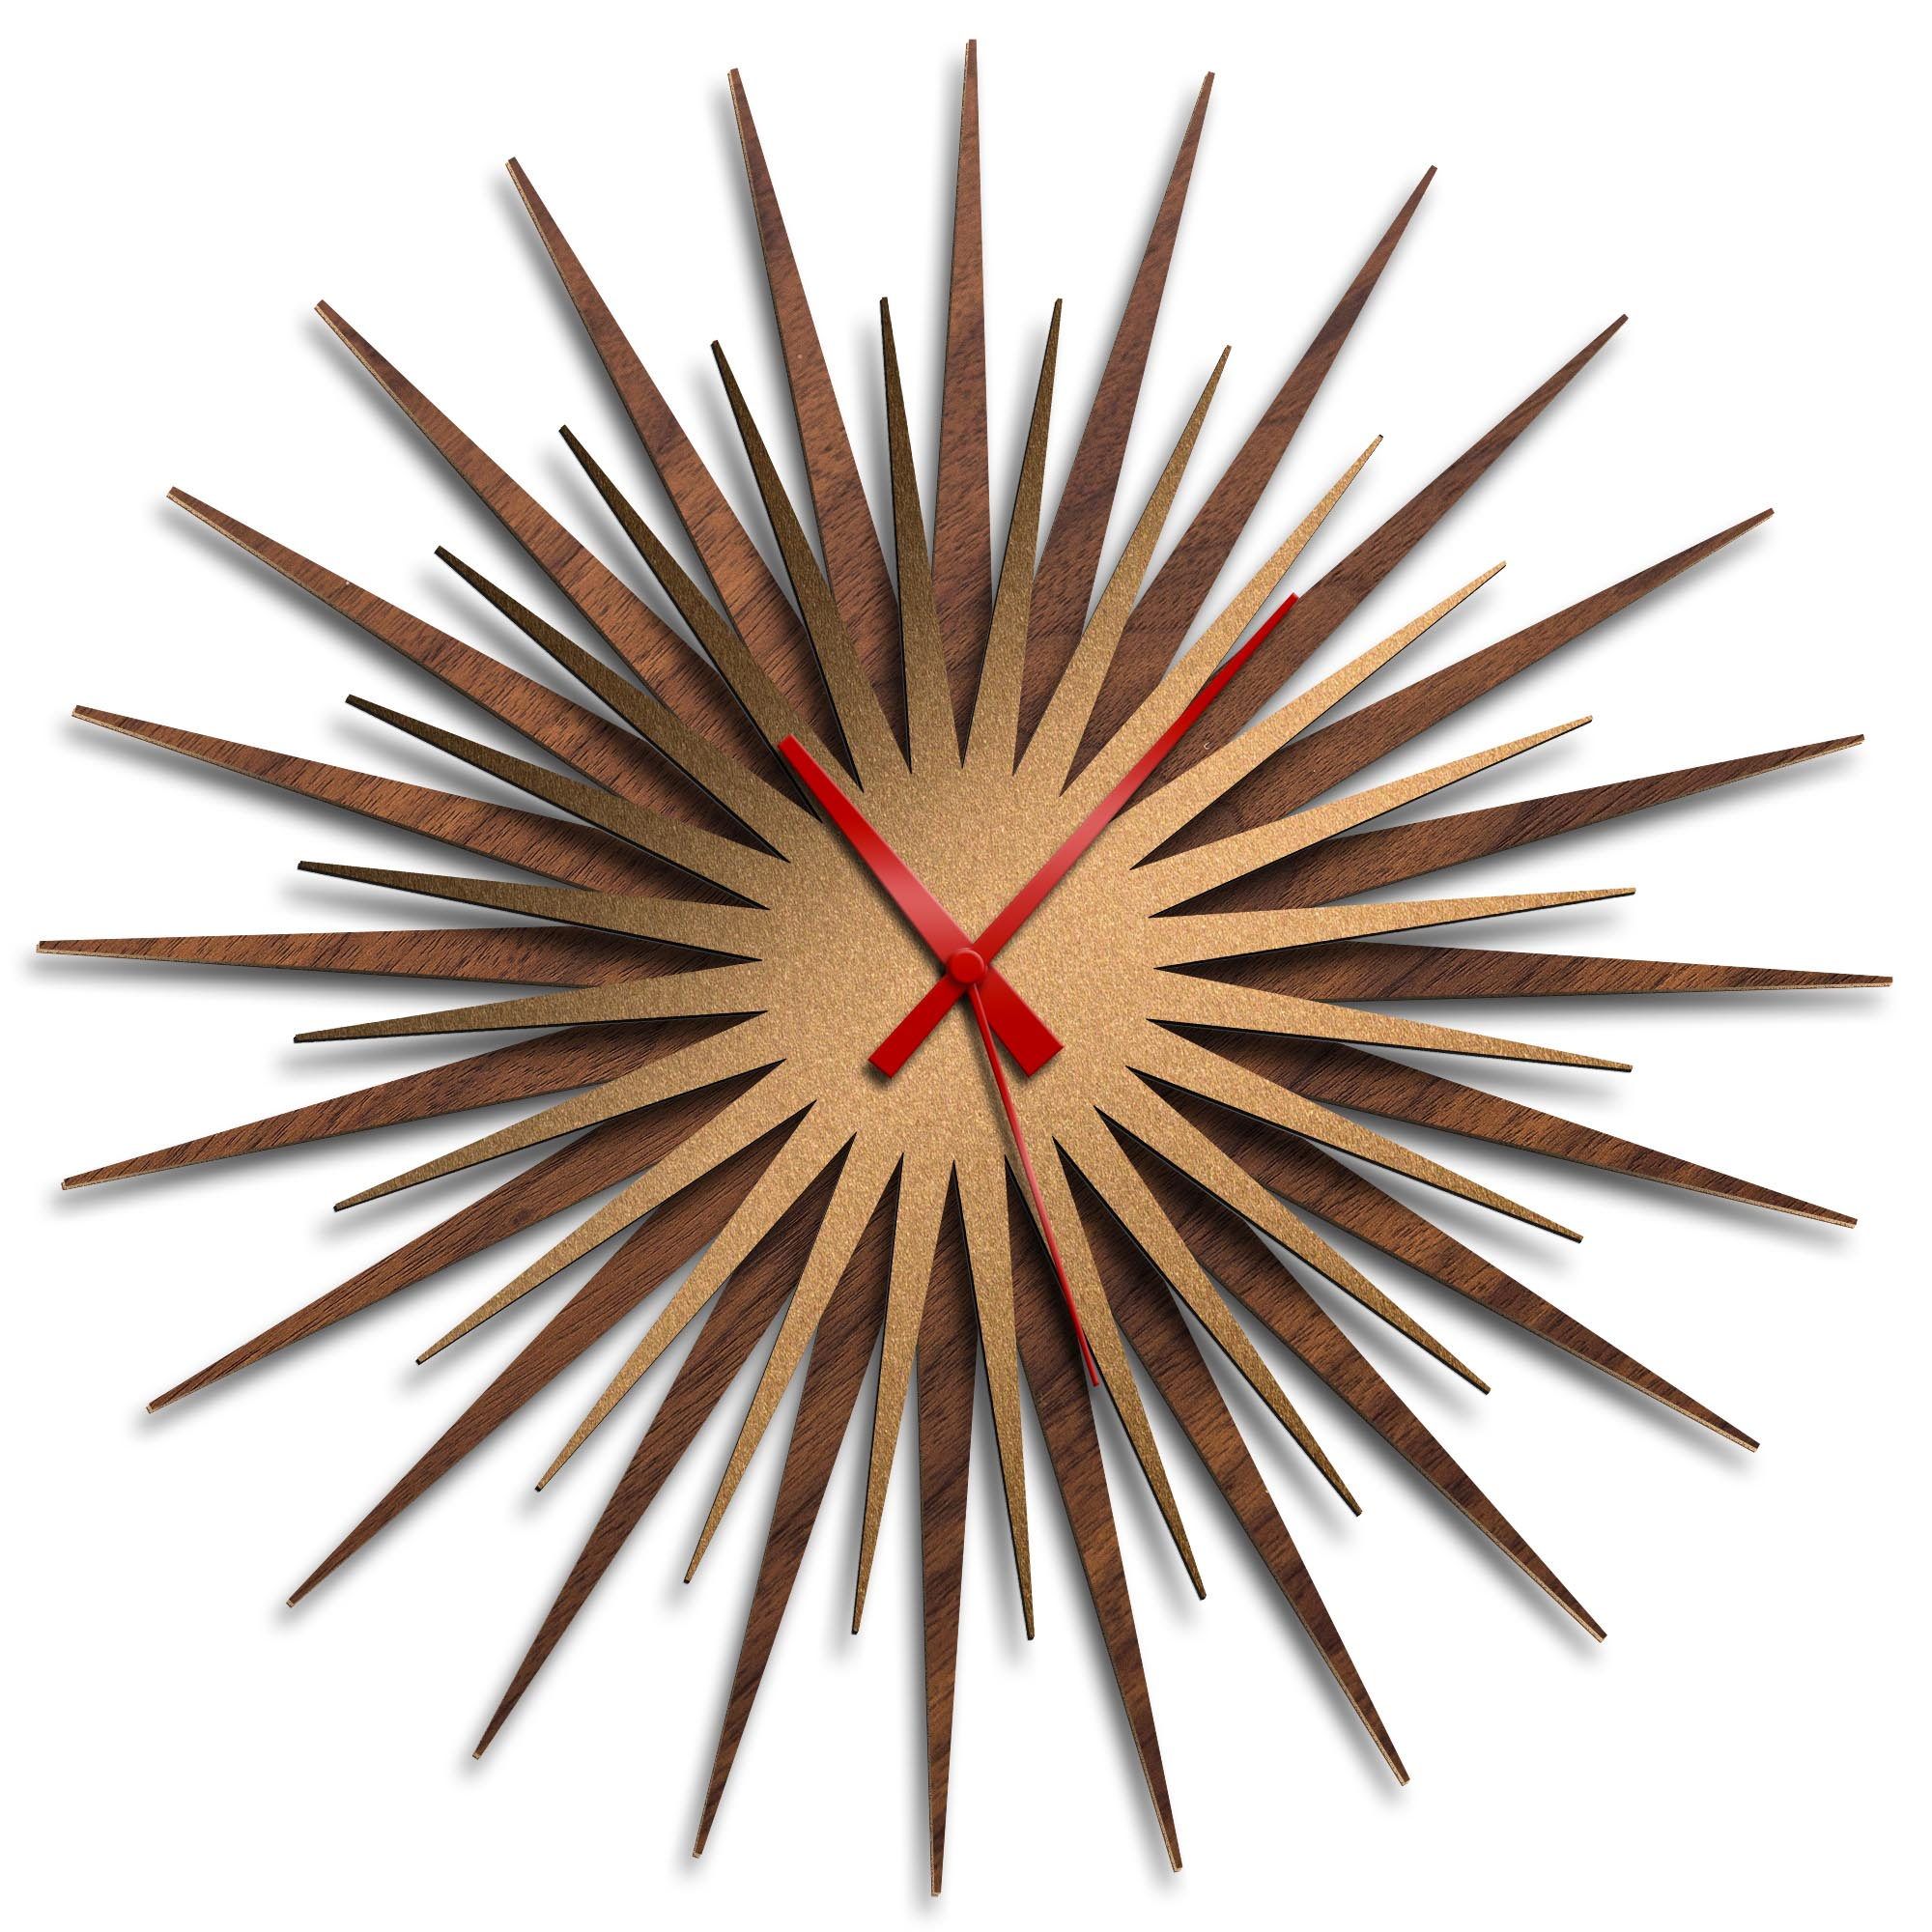 Adam Schwoeppe 'Atomic Era Clock Walnut Bronze Red' Midcentury Modern Style Wall Clock